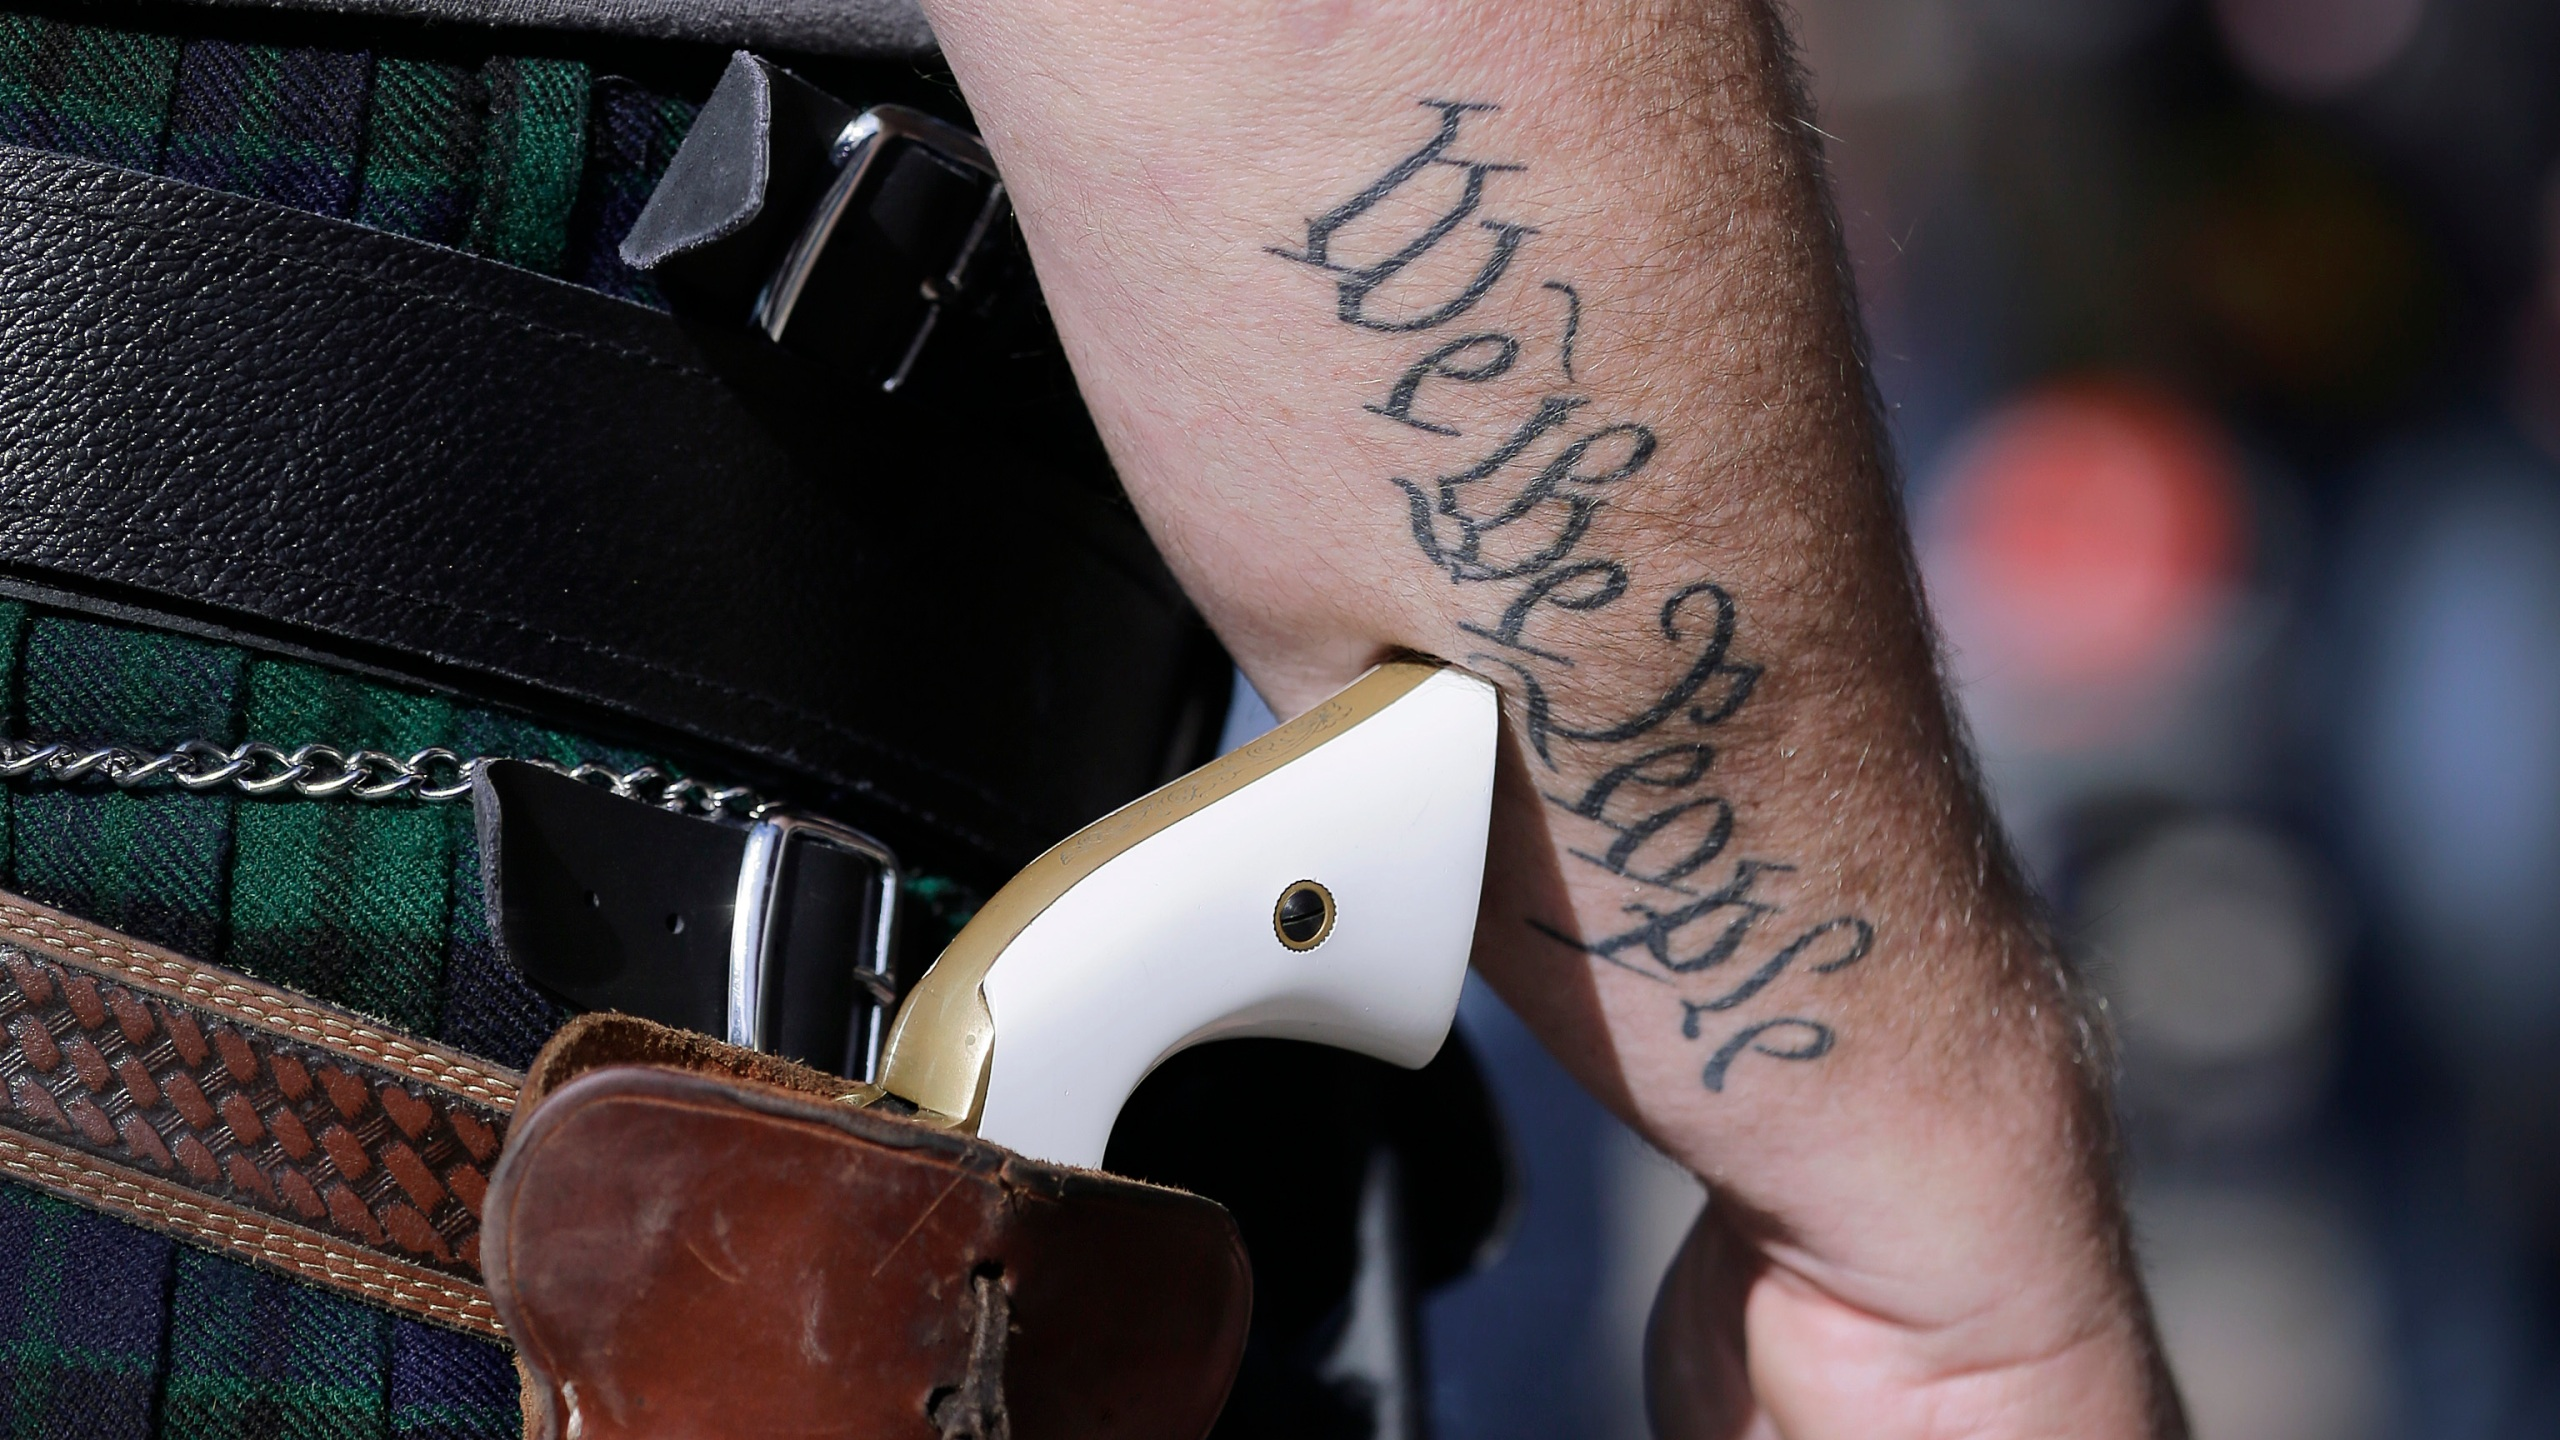 In this Jan. 26, 2015 file photo, a supporter of open carry gun laws, wears a pistol as he prepares for a rally in support of open carry gun laws at the Capitol, in Austin, Texas. Texas lawmakers have given final approval to allowing people carry handguns without a license, and the background check and training that go with it. The Republican-dominated Legislature approved the measure Monday, May 24, 2021 sending it to Gov. Abbott. (AP Photo/Eric Gay, File)